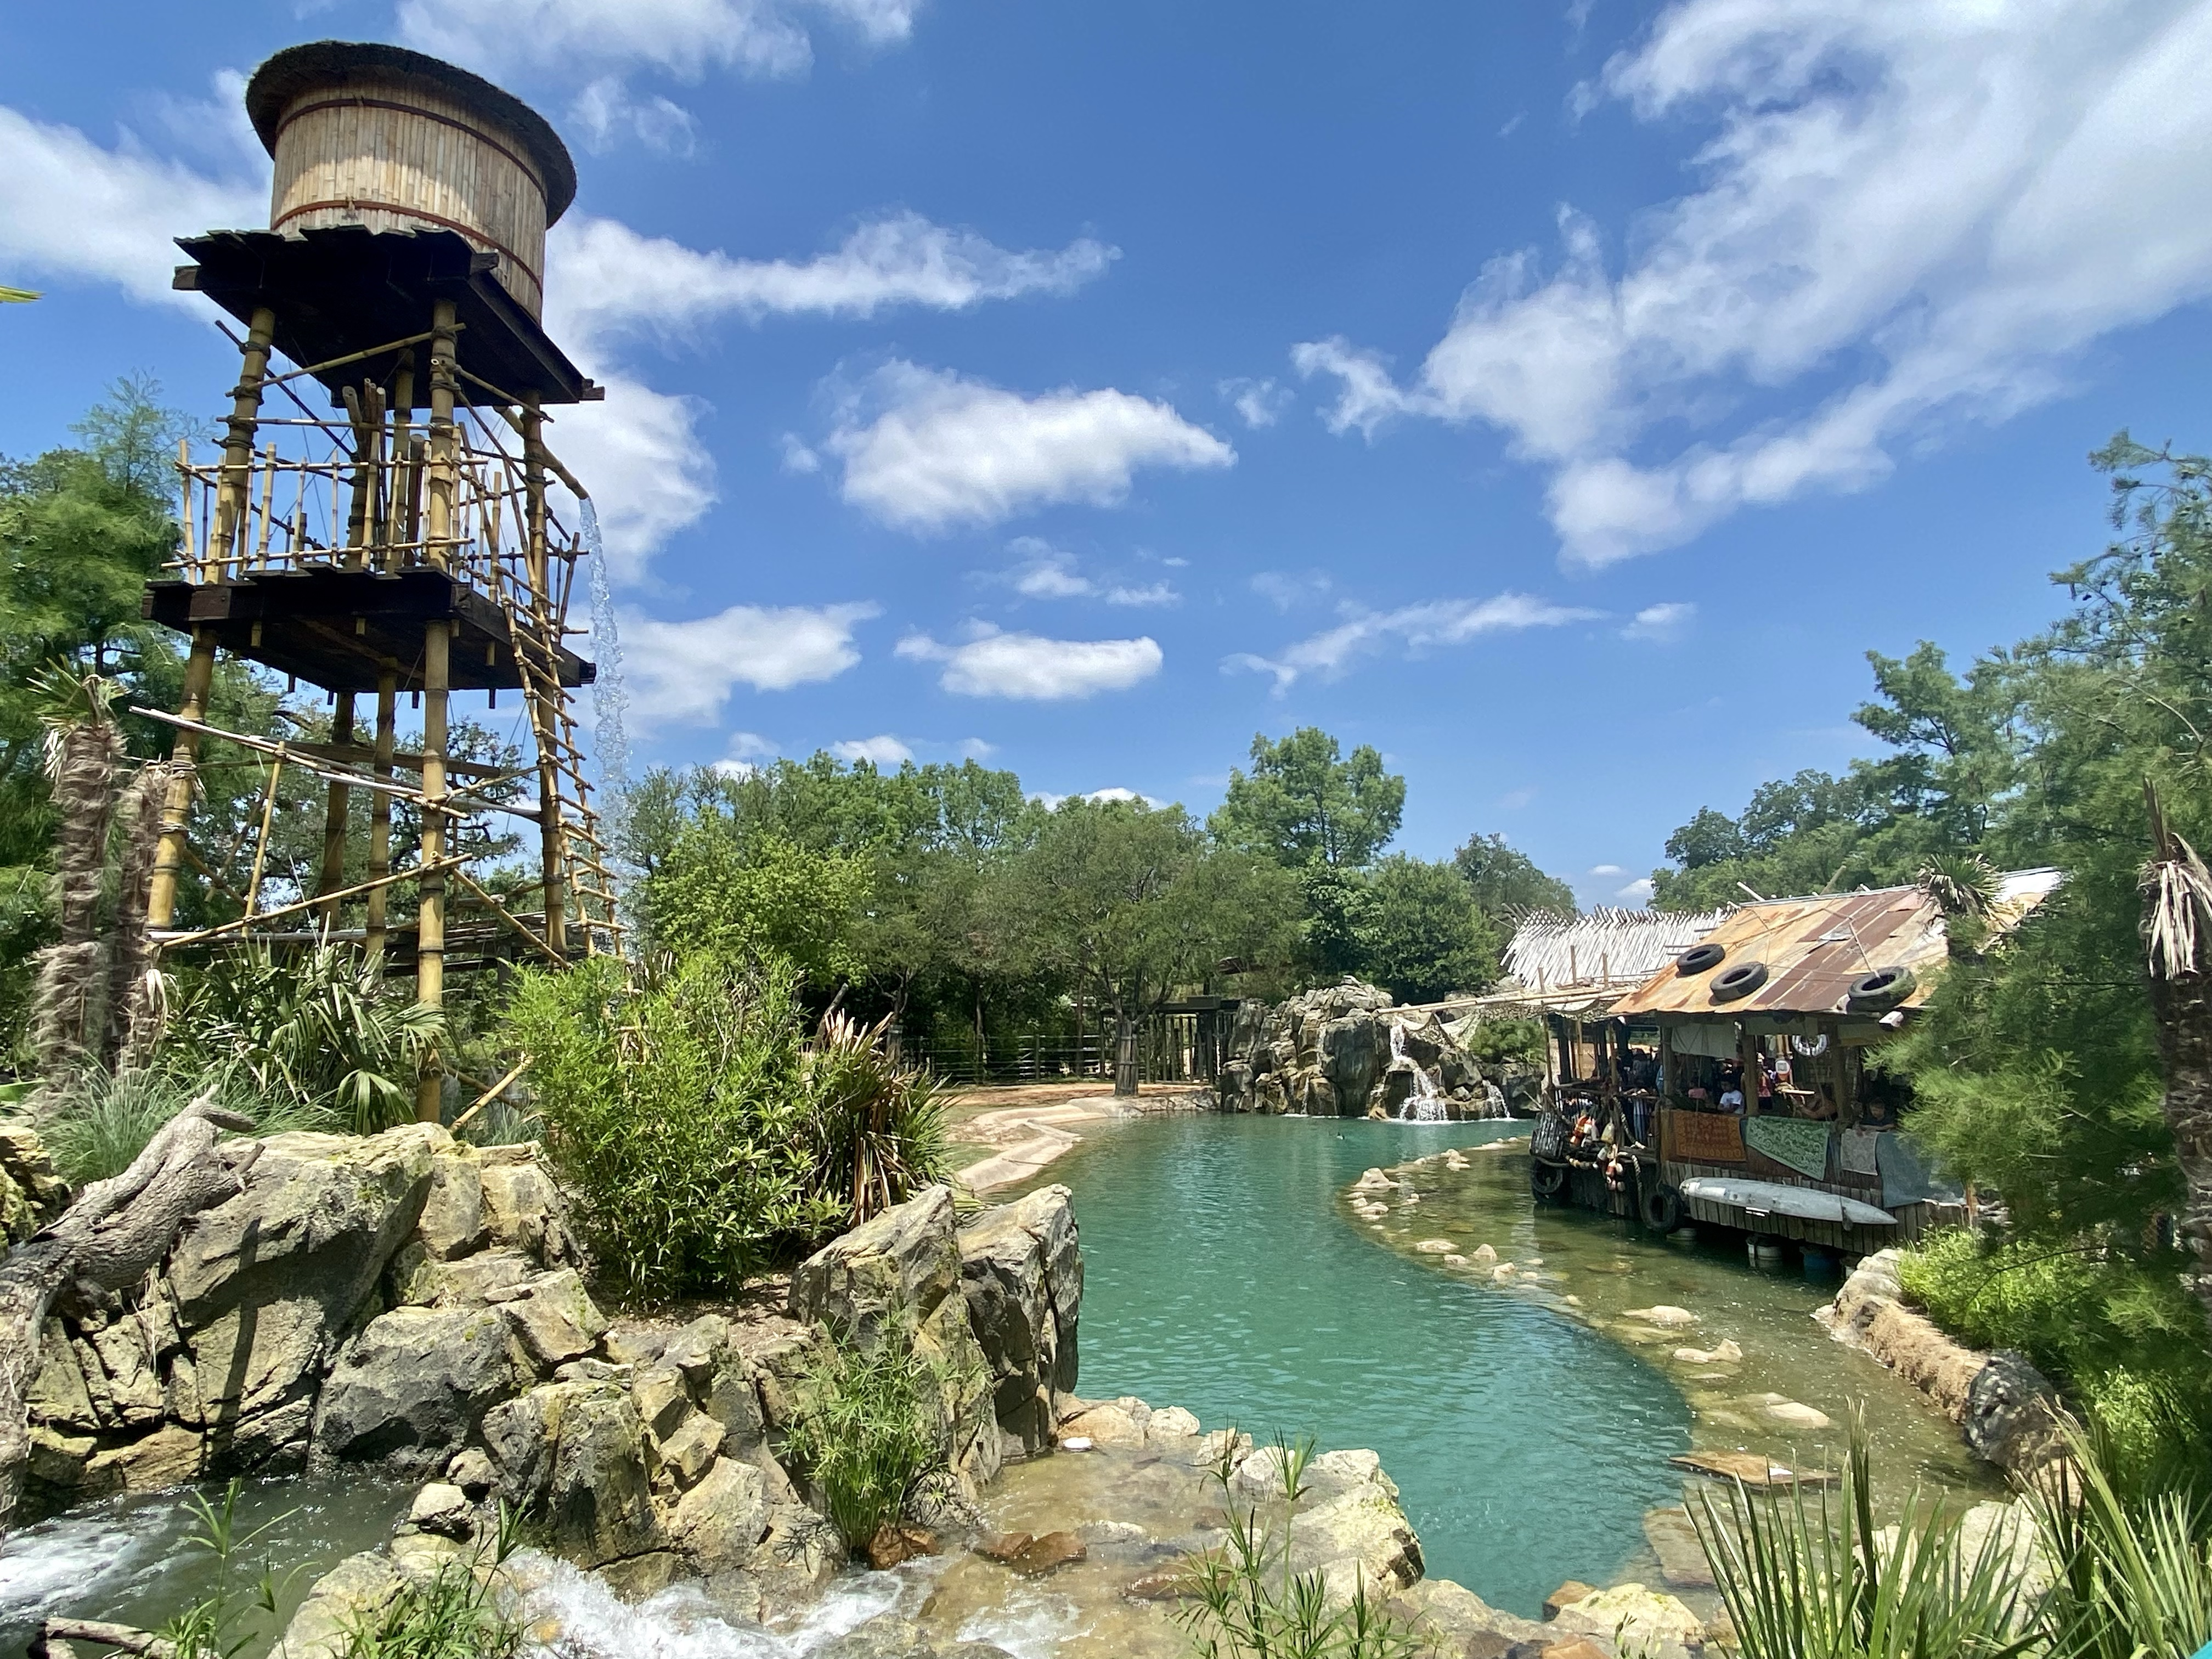 Elephant Springs at the Fort Worth Zoo